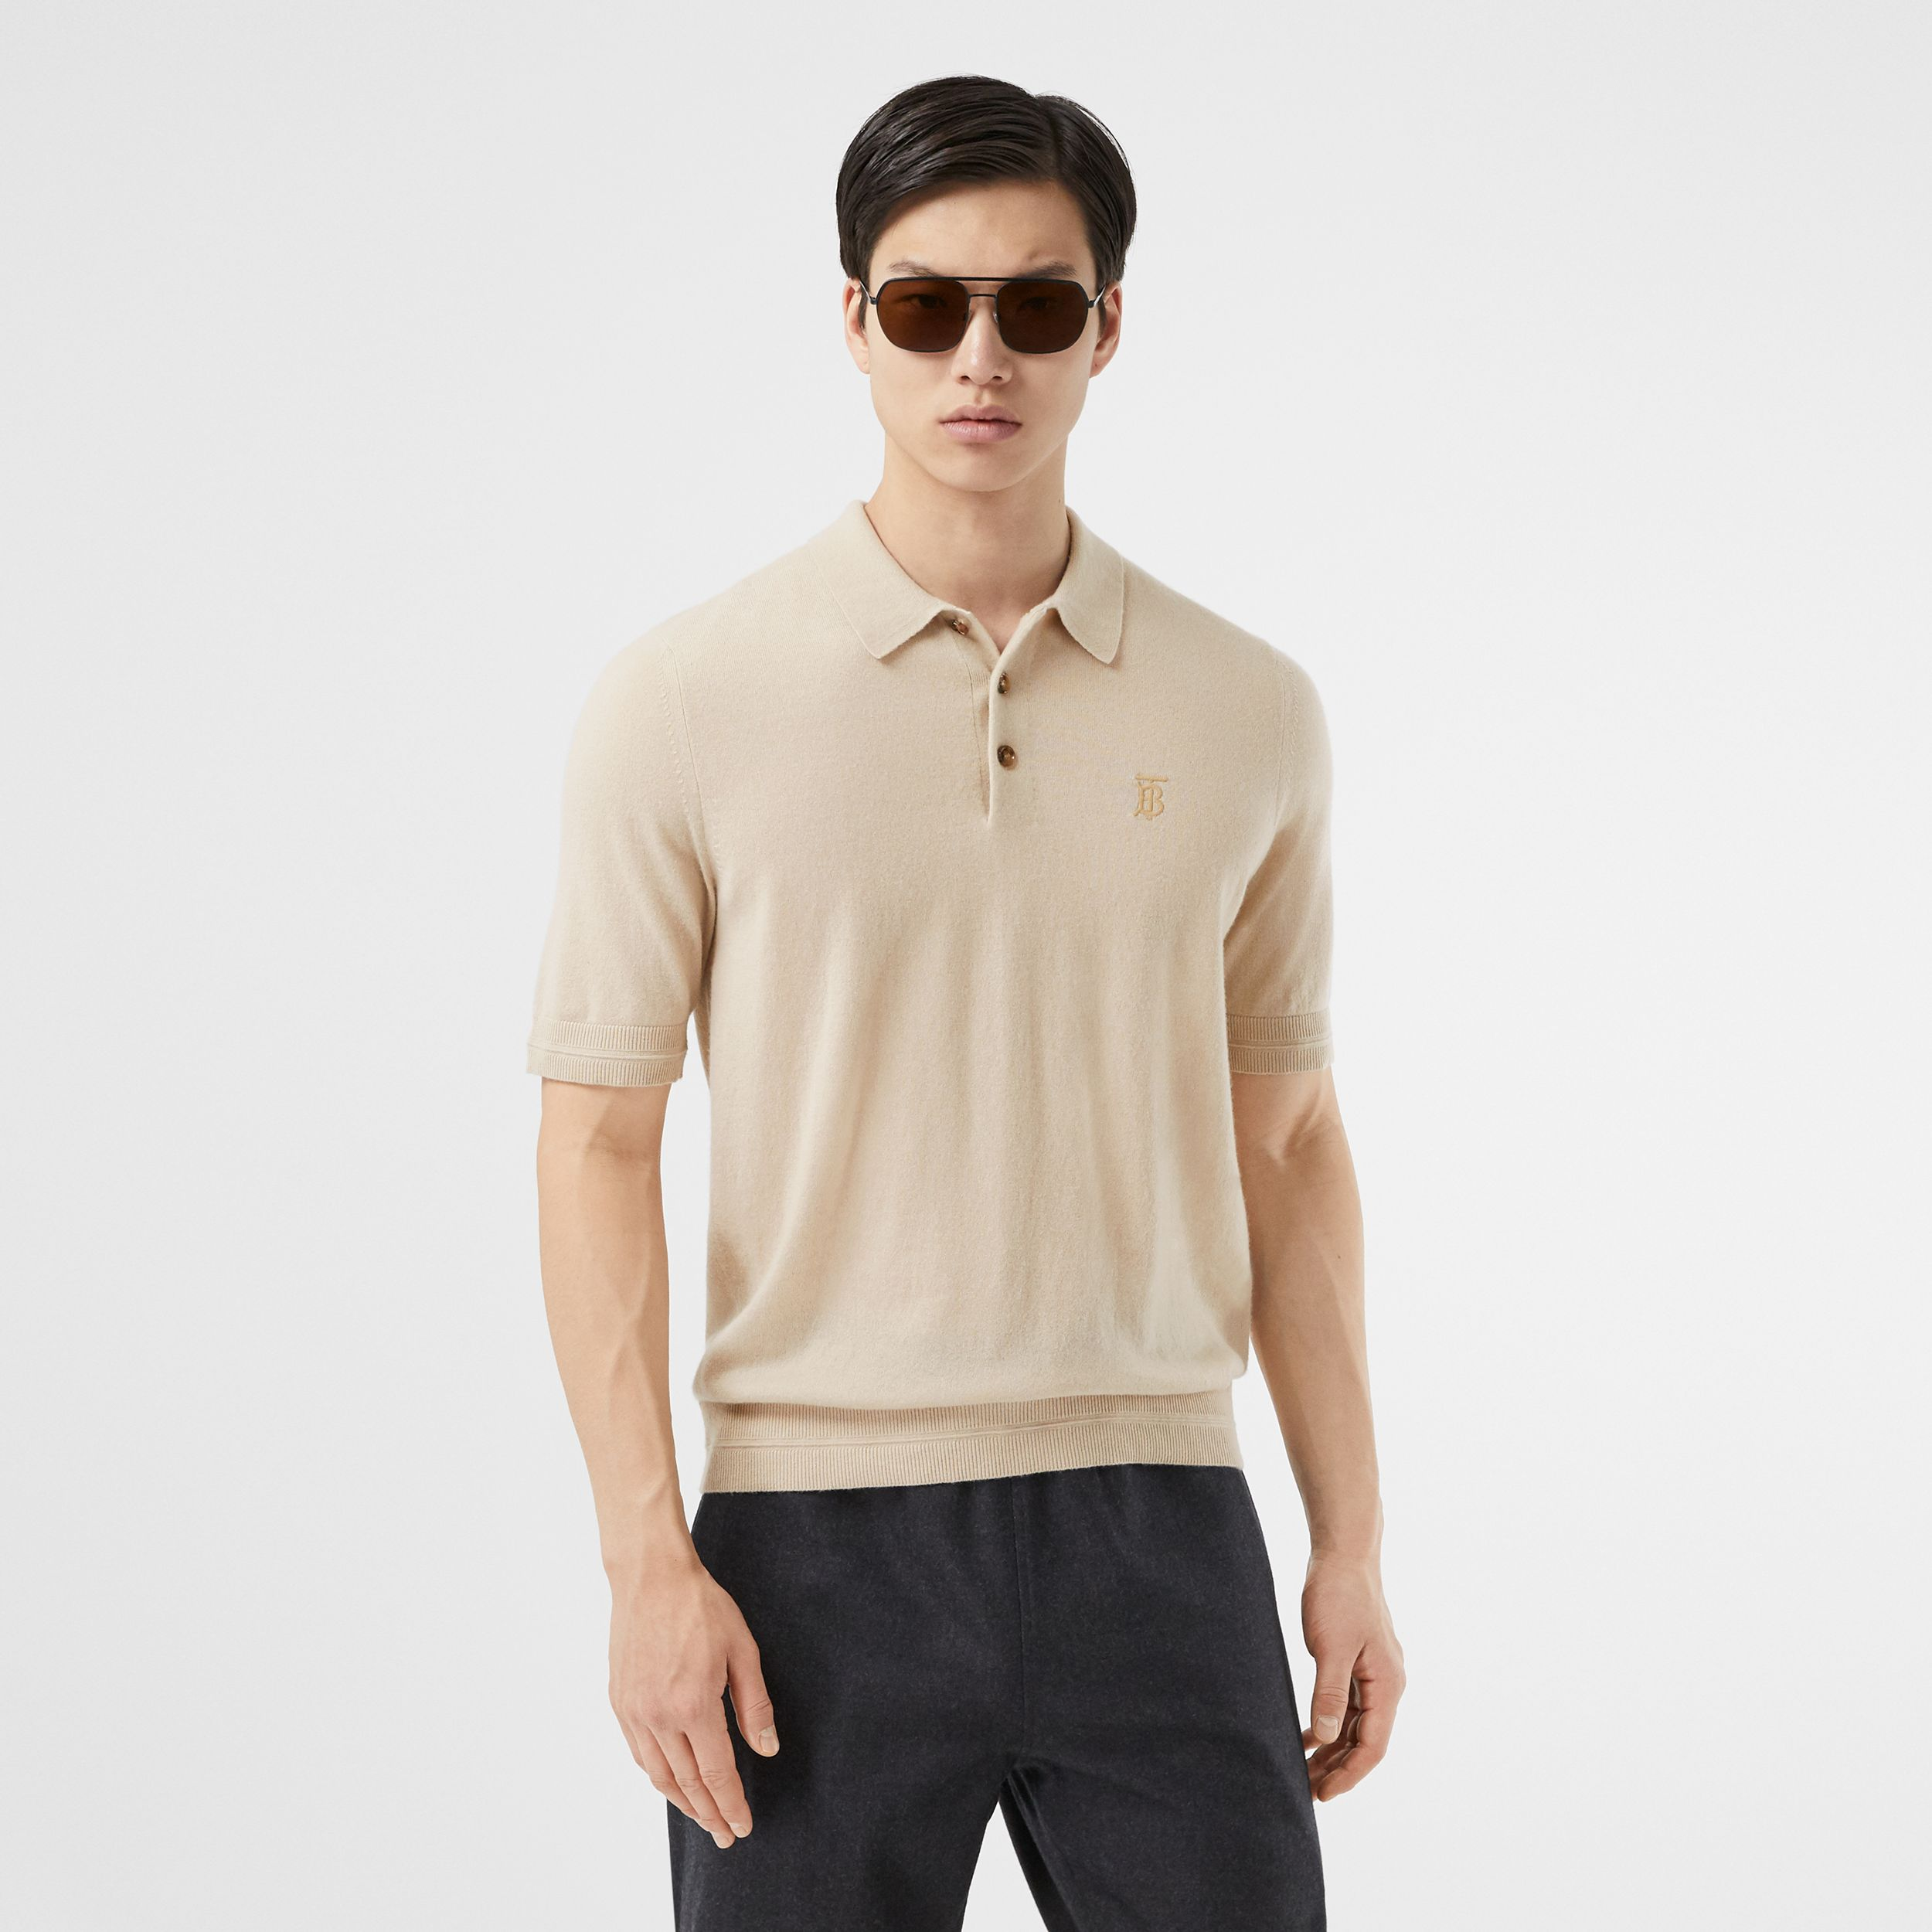 Monogram Motif Cashmere Polo Shirt in Soft Fawn - Men | Burberry - 1